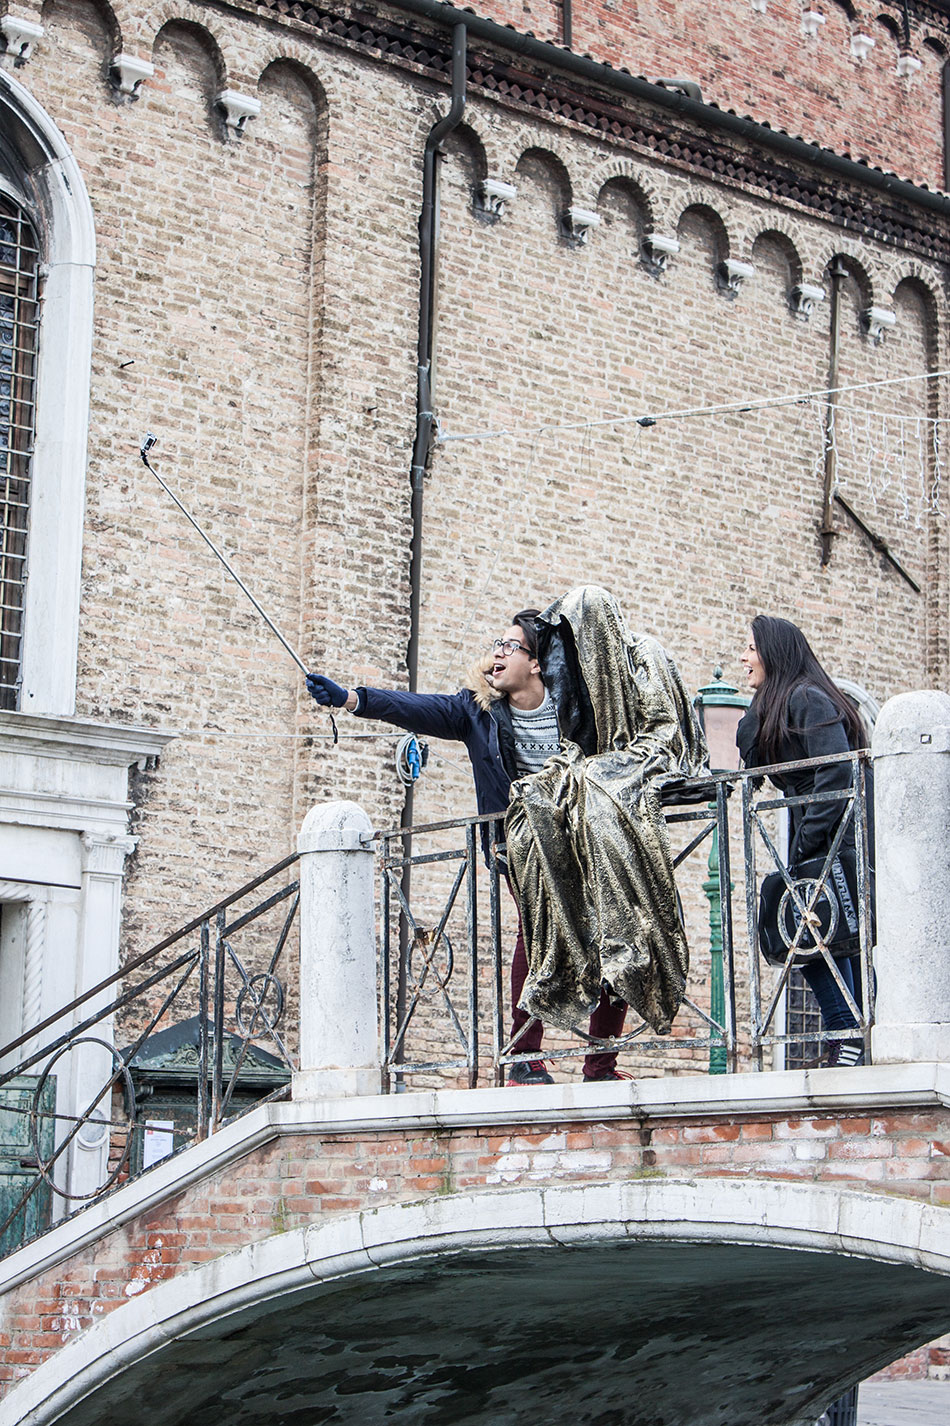 biennale-art-italia-venice-murano-glas-berengo-show-guardians-of-time-manfred-kielnhofer-public-contemporary-art-sculpture-design-7216